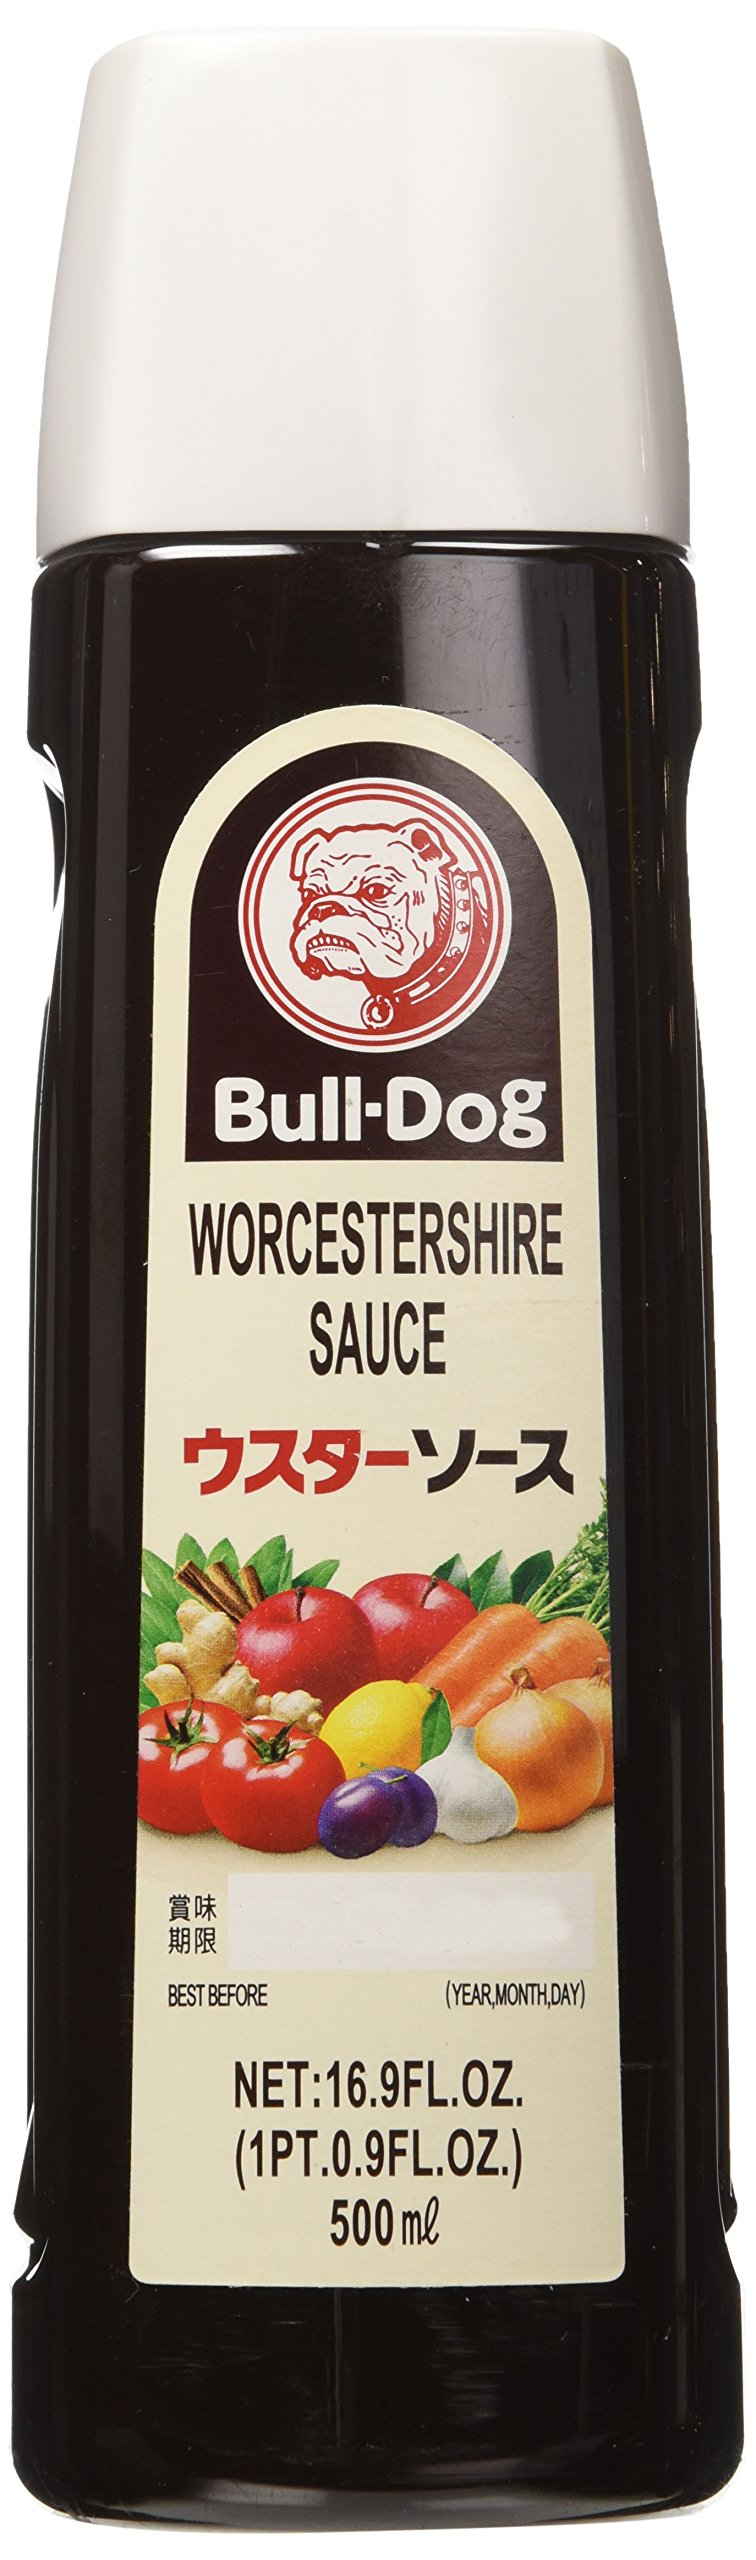 Worcestershire Sauce - 16.9oz (Pack of 1) by Bull-Dog